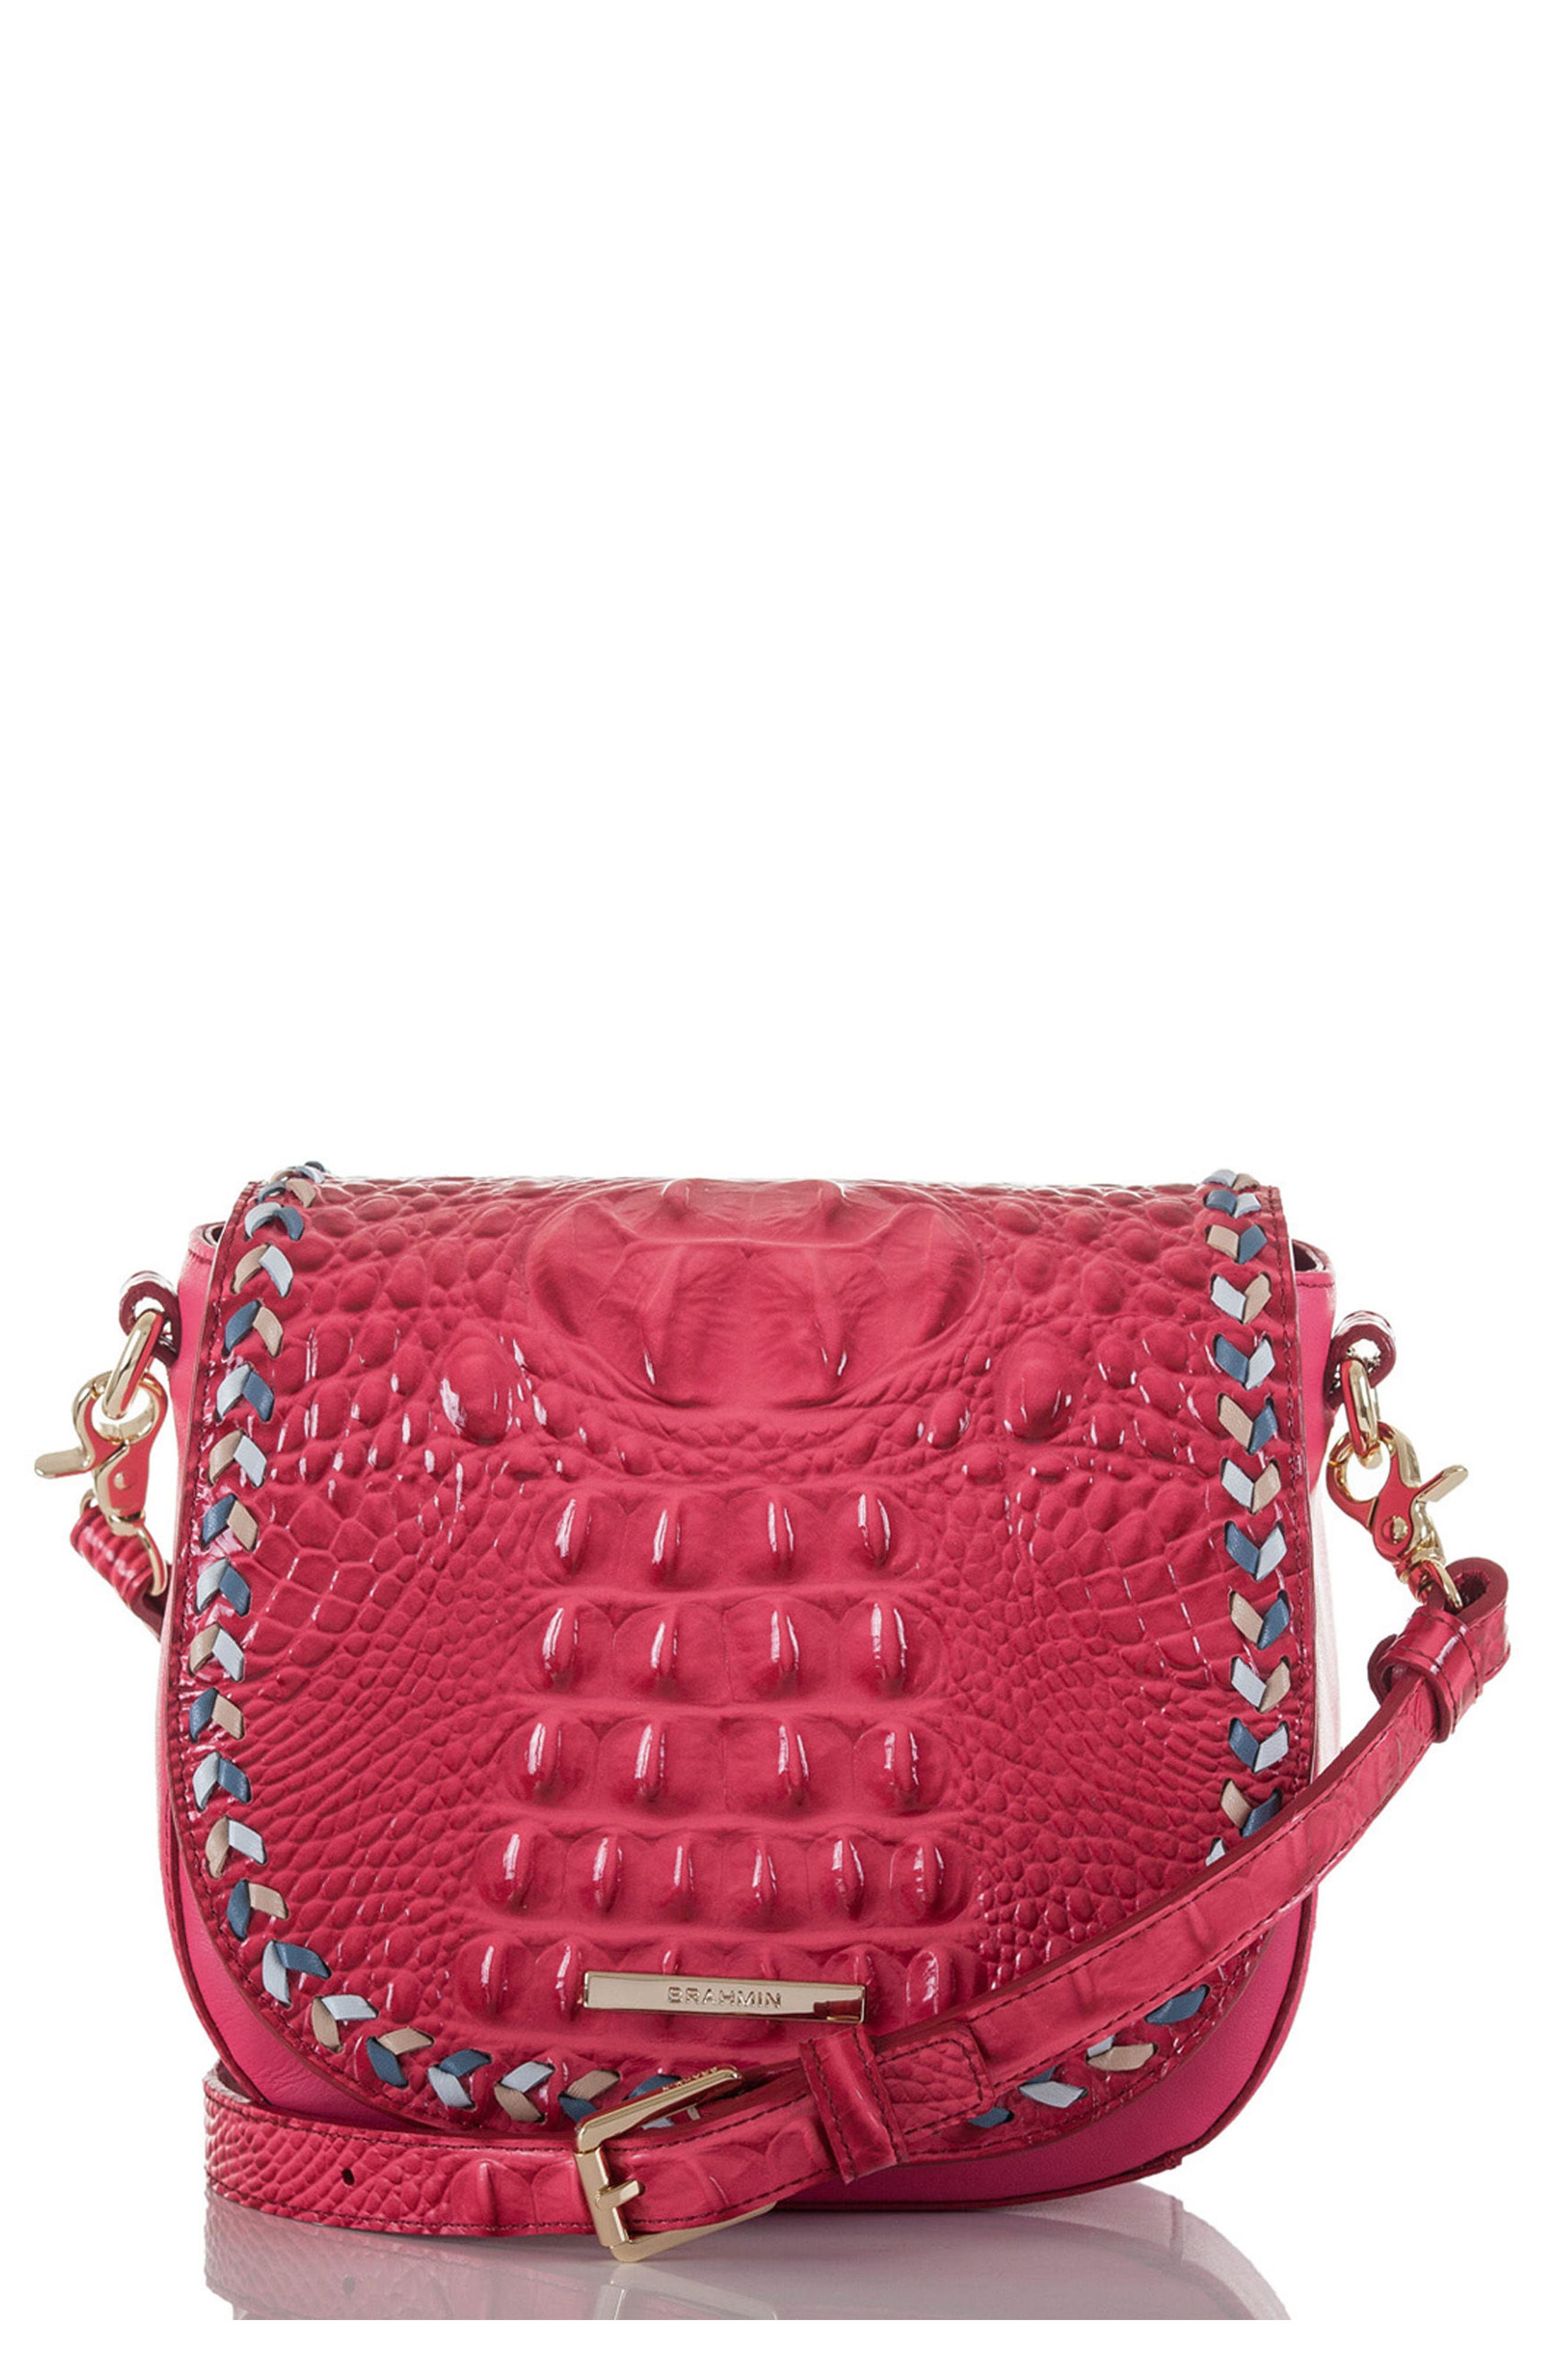 Mini Sonny Whipstitched Leather Crossbody Bag,                             Main thumbnail 1, color,                             Ribbon